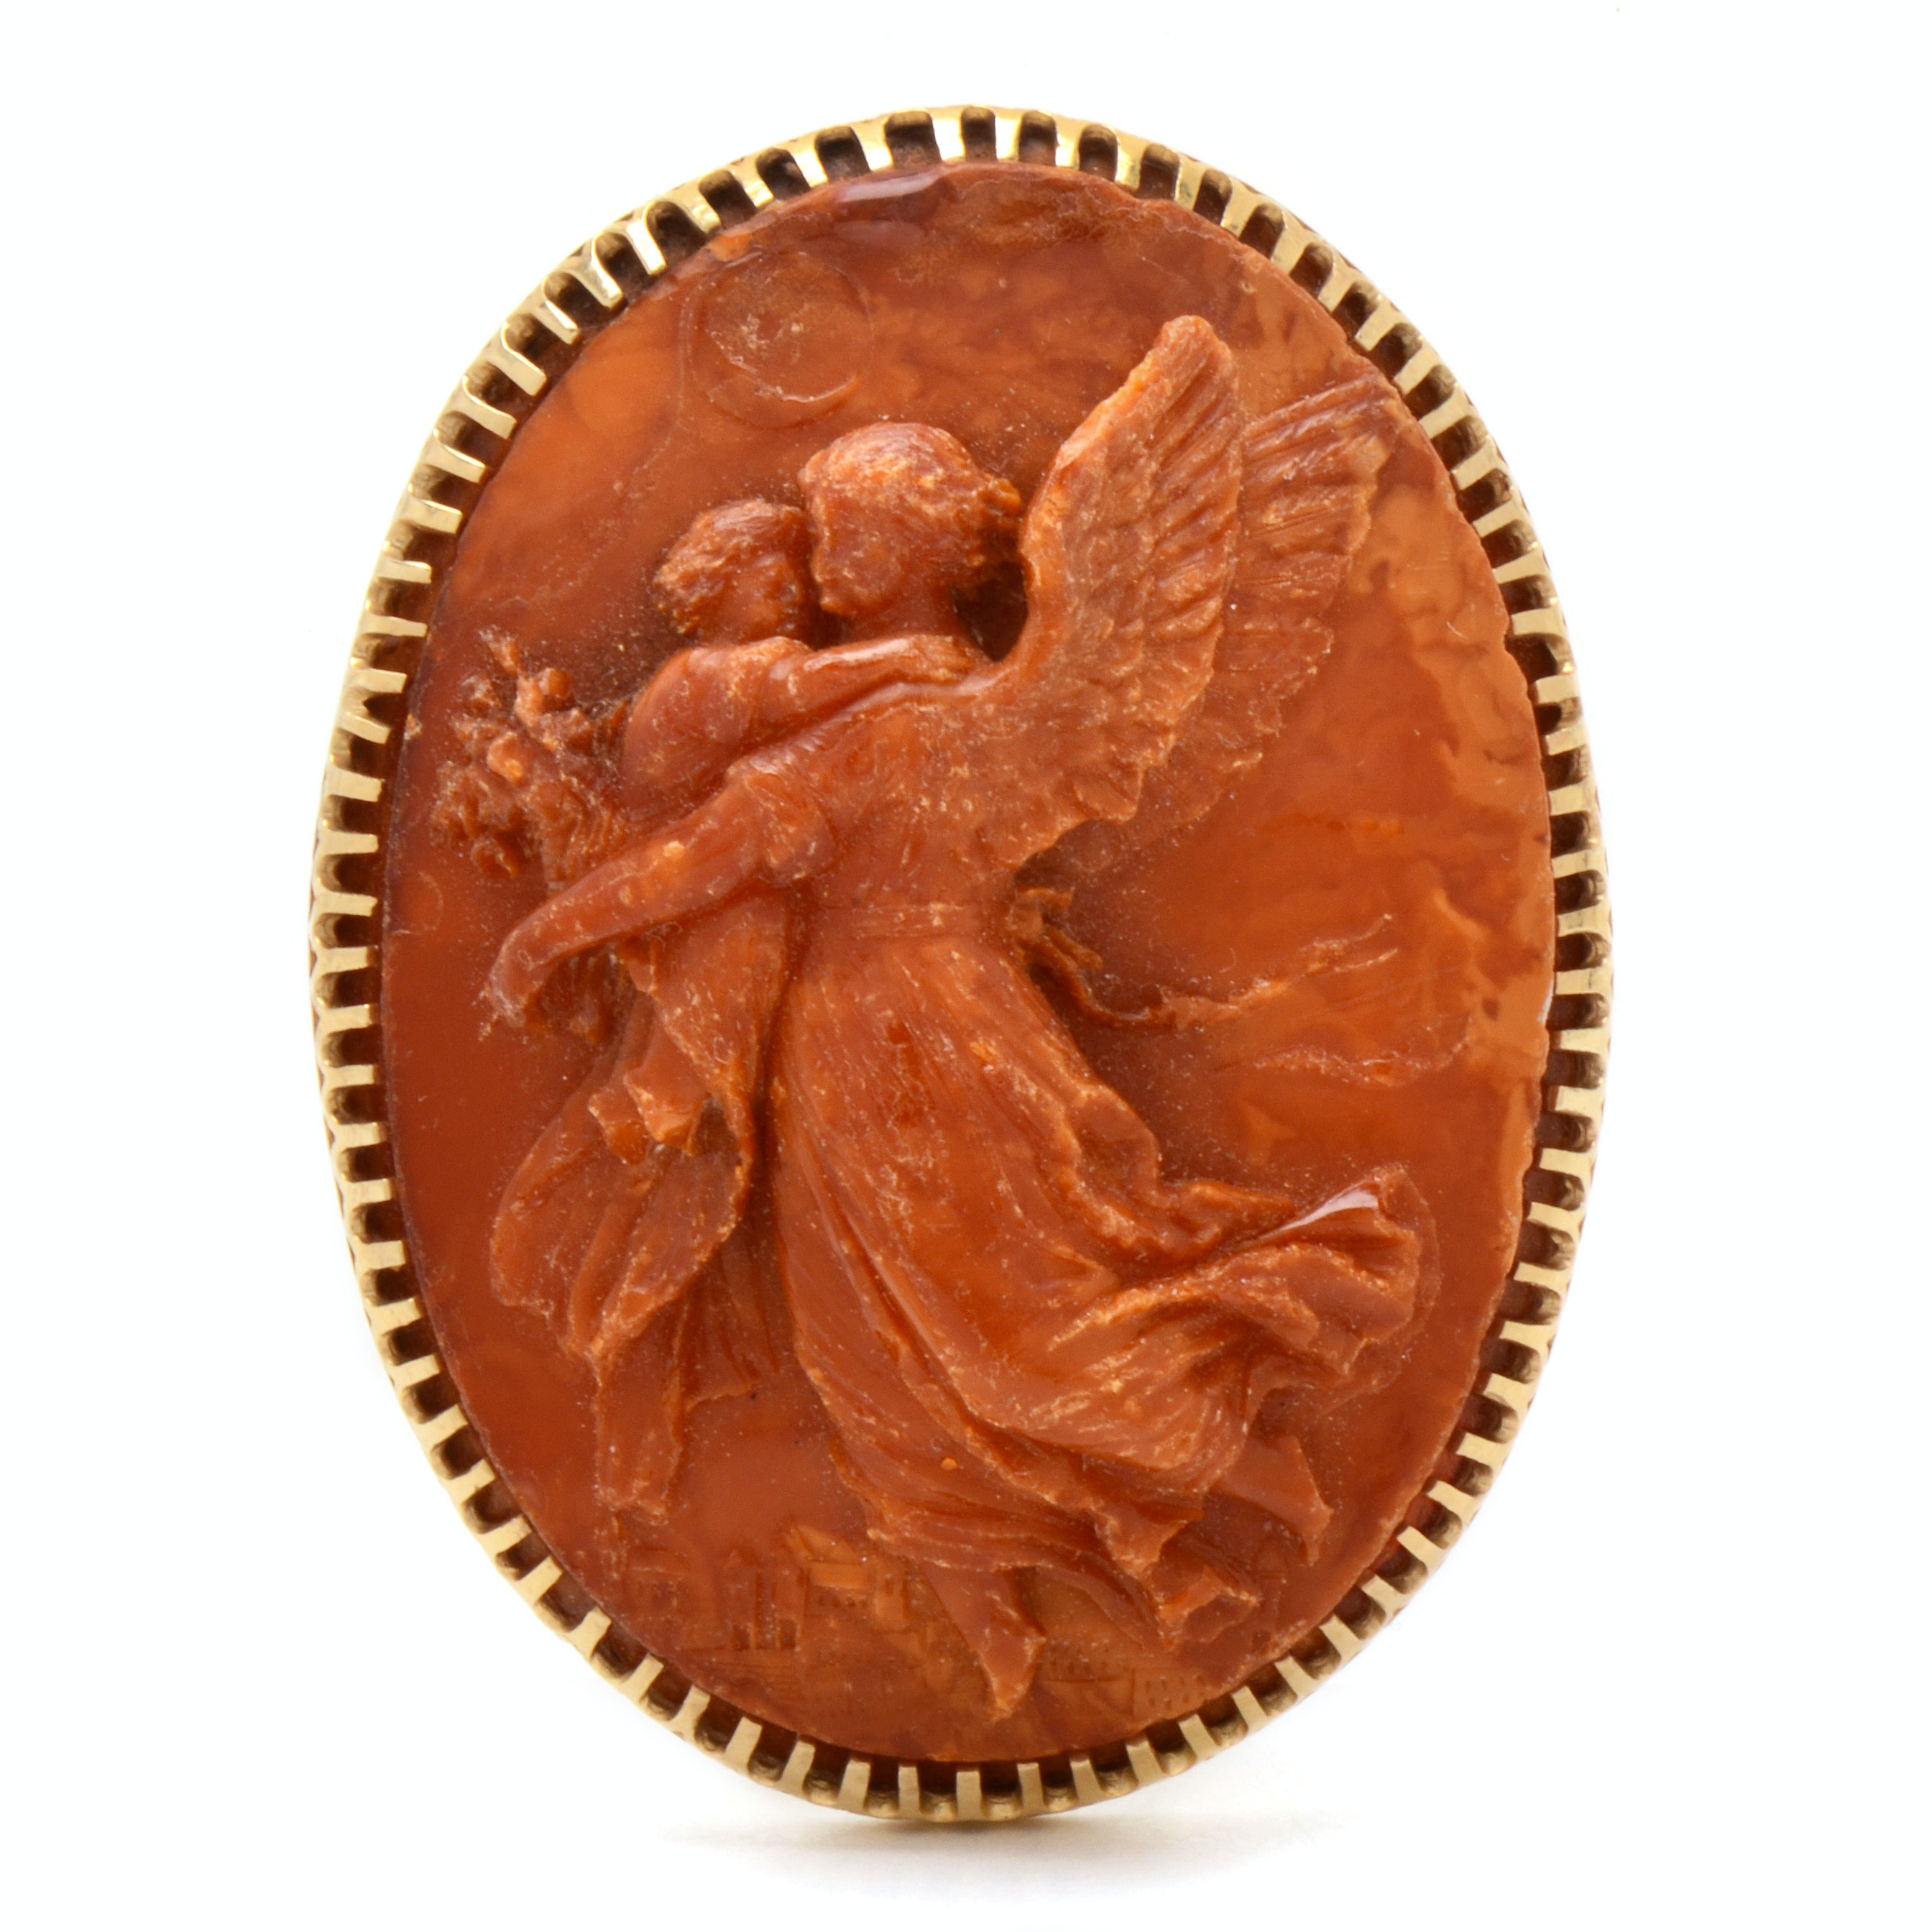 Vintage 14K Yellow Gold Carved Imitation Amber Cameo Brooch